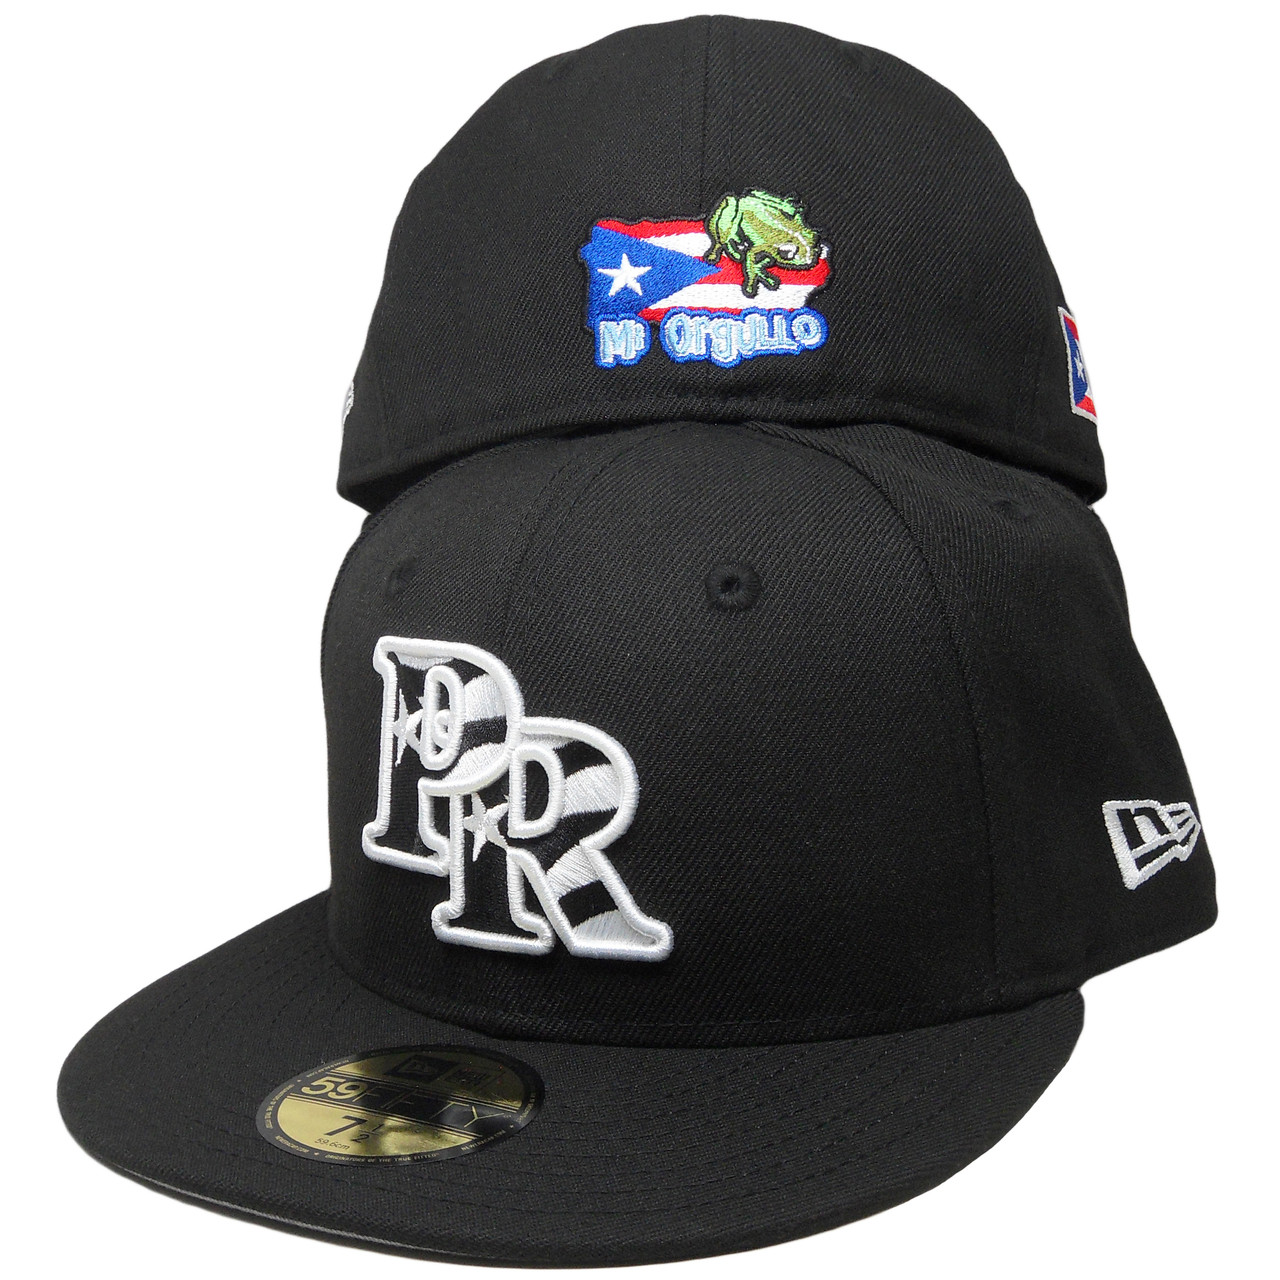 7159e974ee372 coupon code for puerto rico new era custom flag logo 59fifty fitted black  white red royal